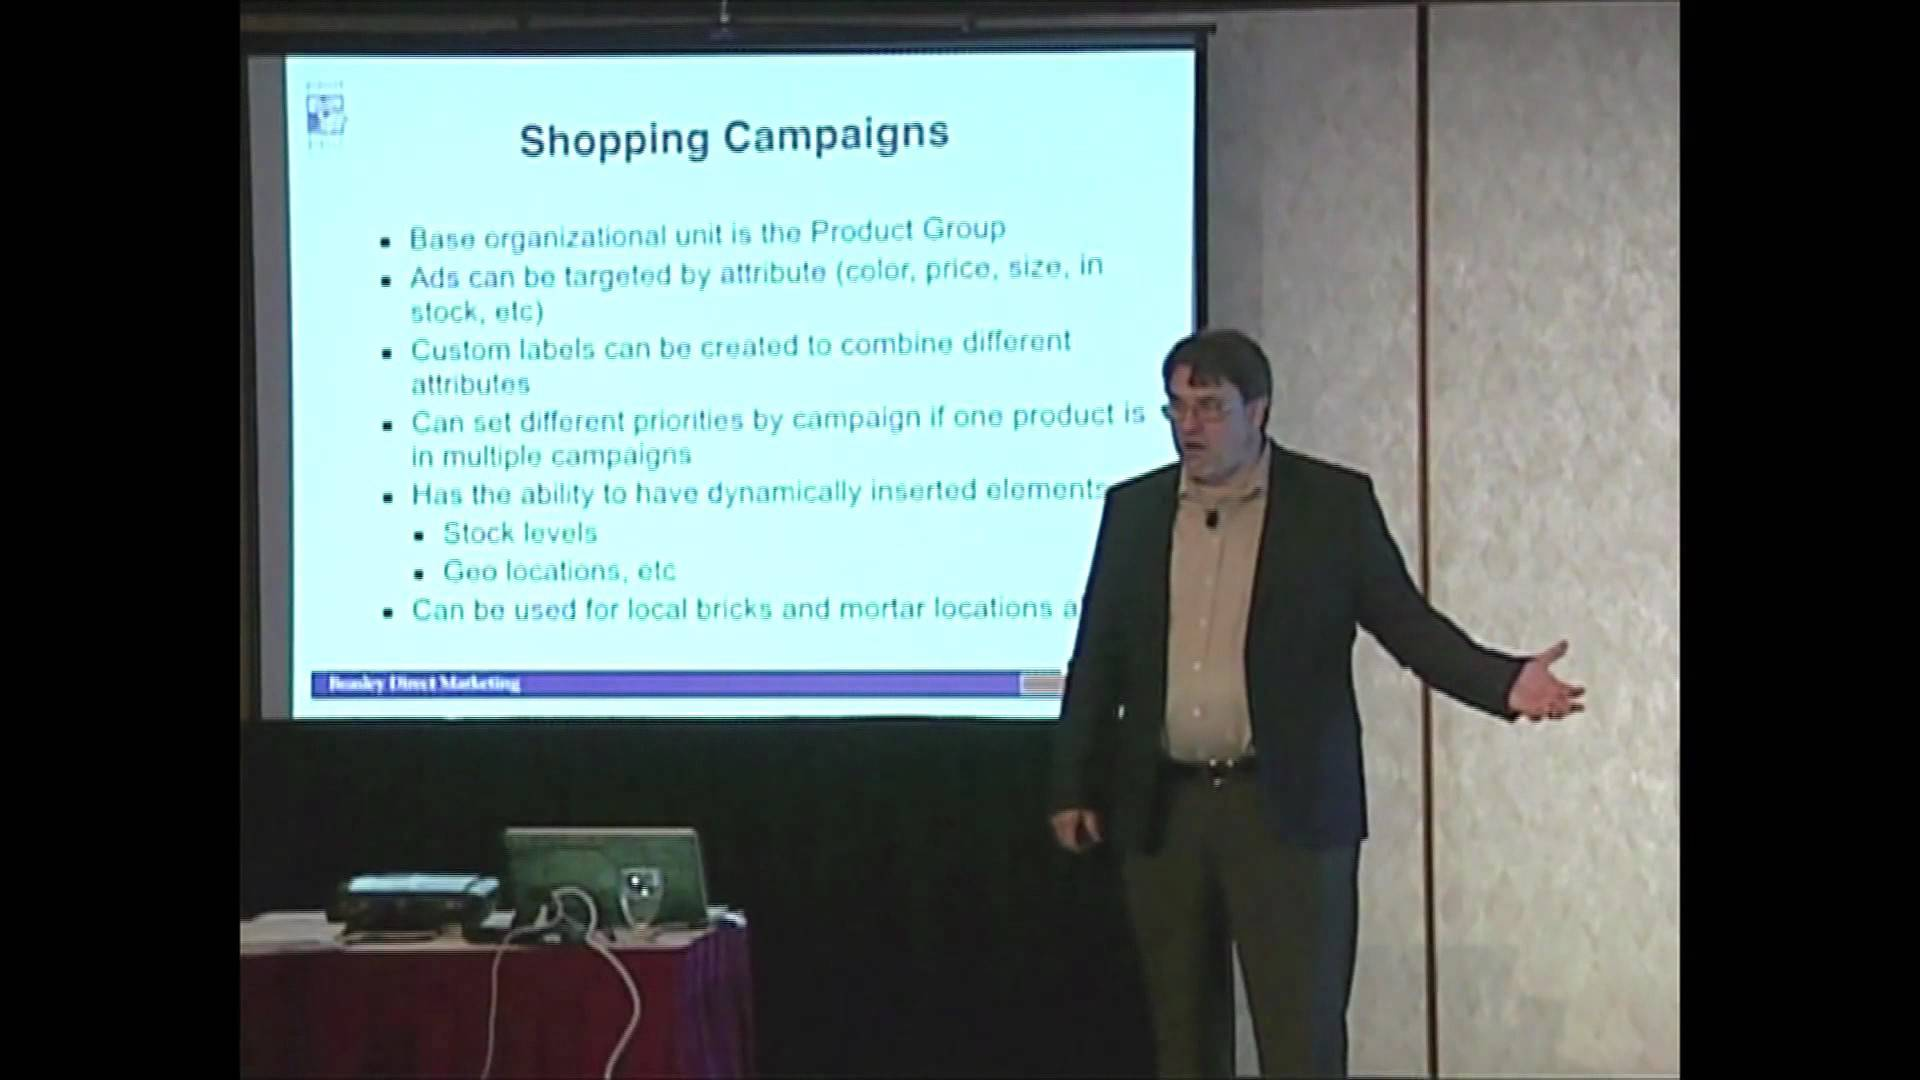 Remarketing & Shopping PPC Campaigns